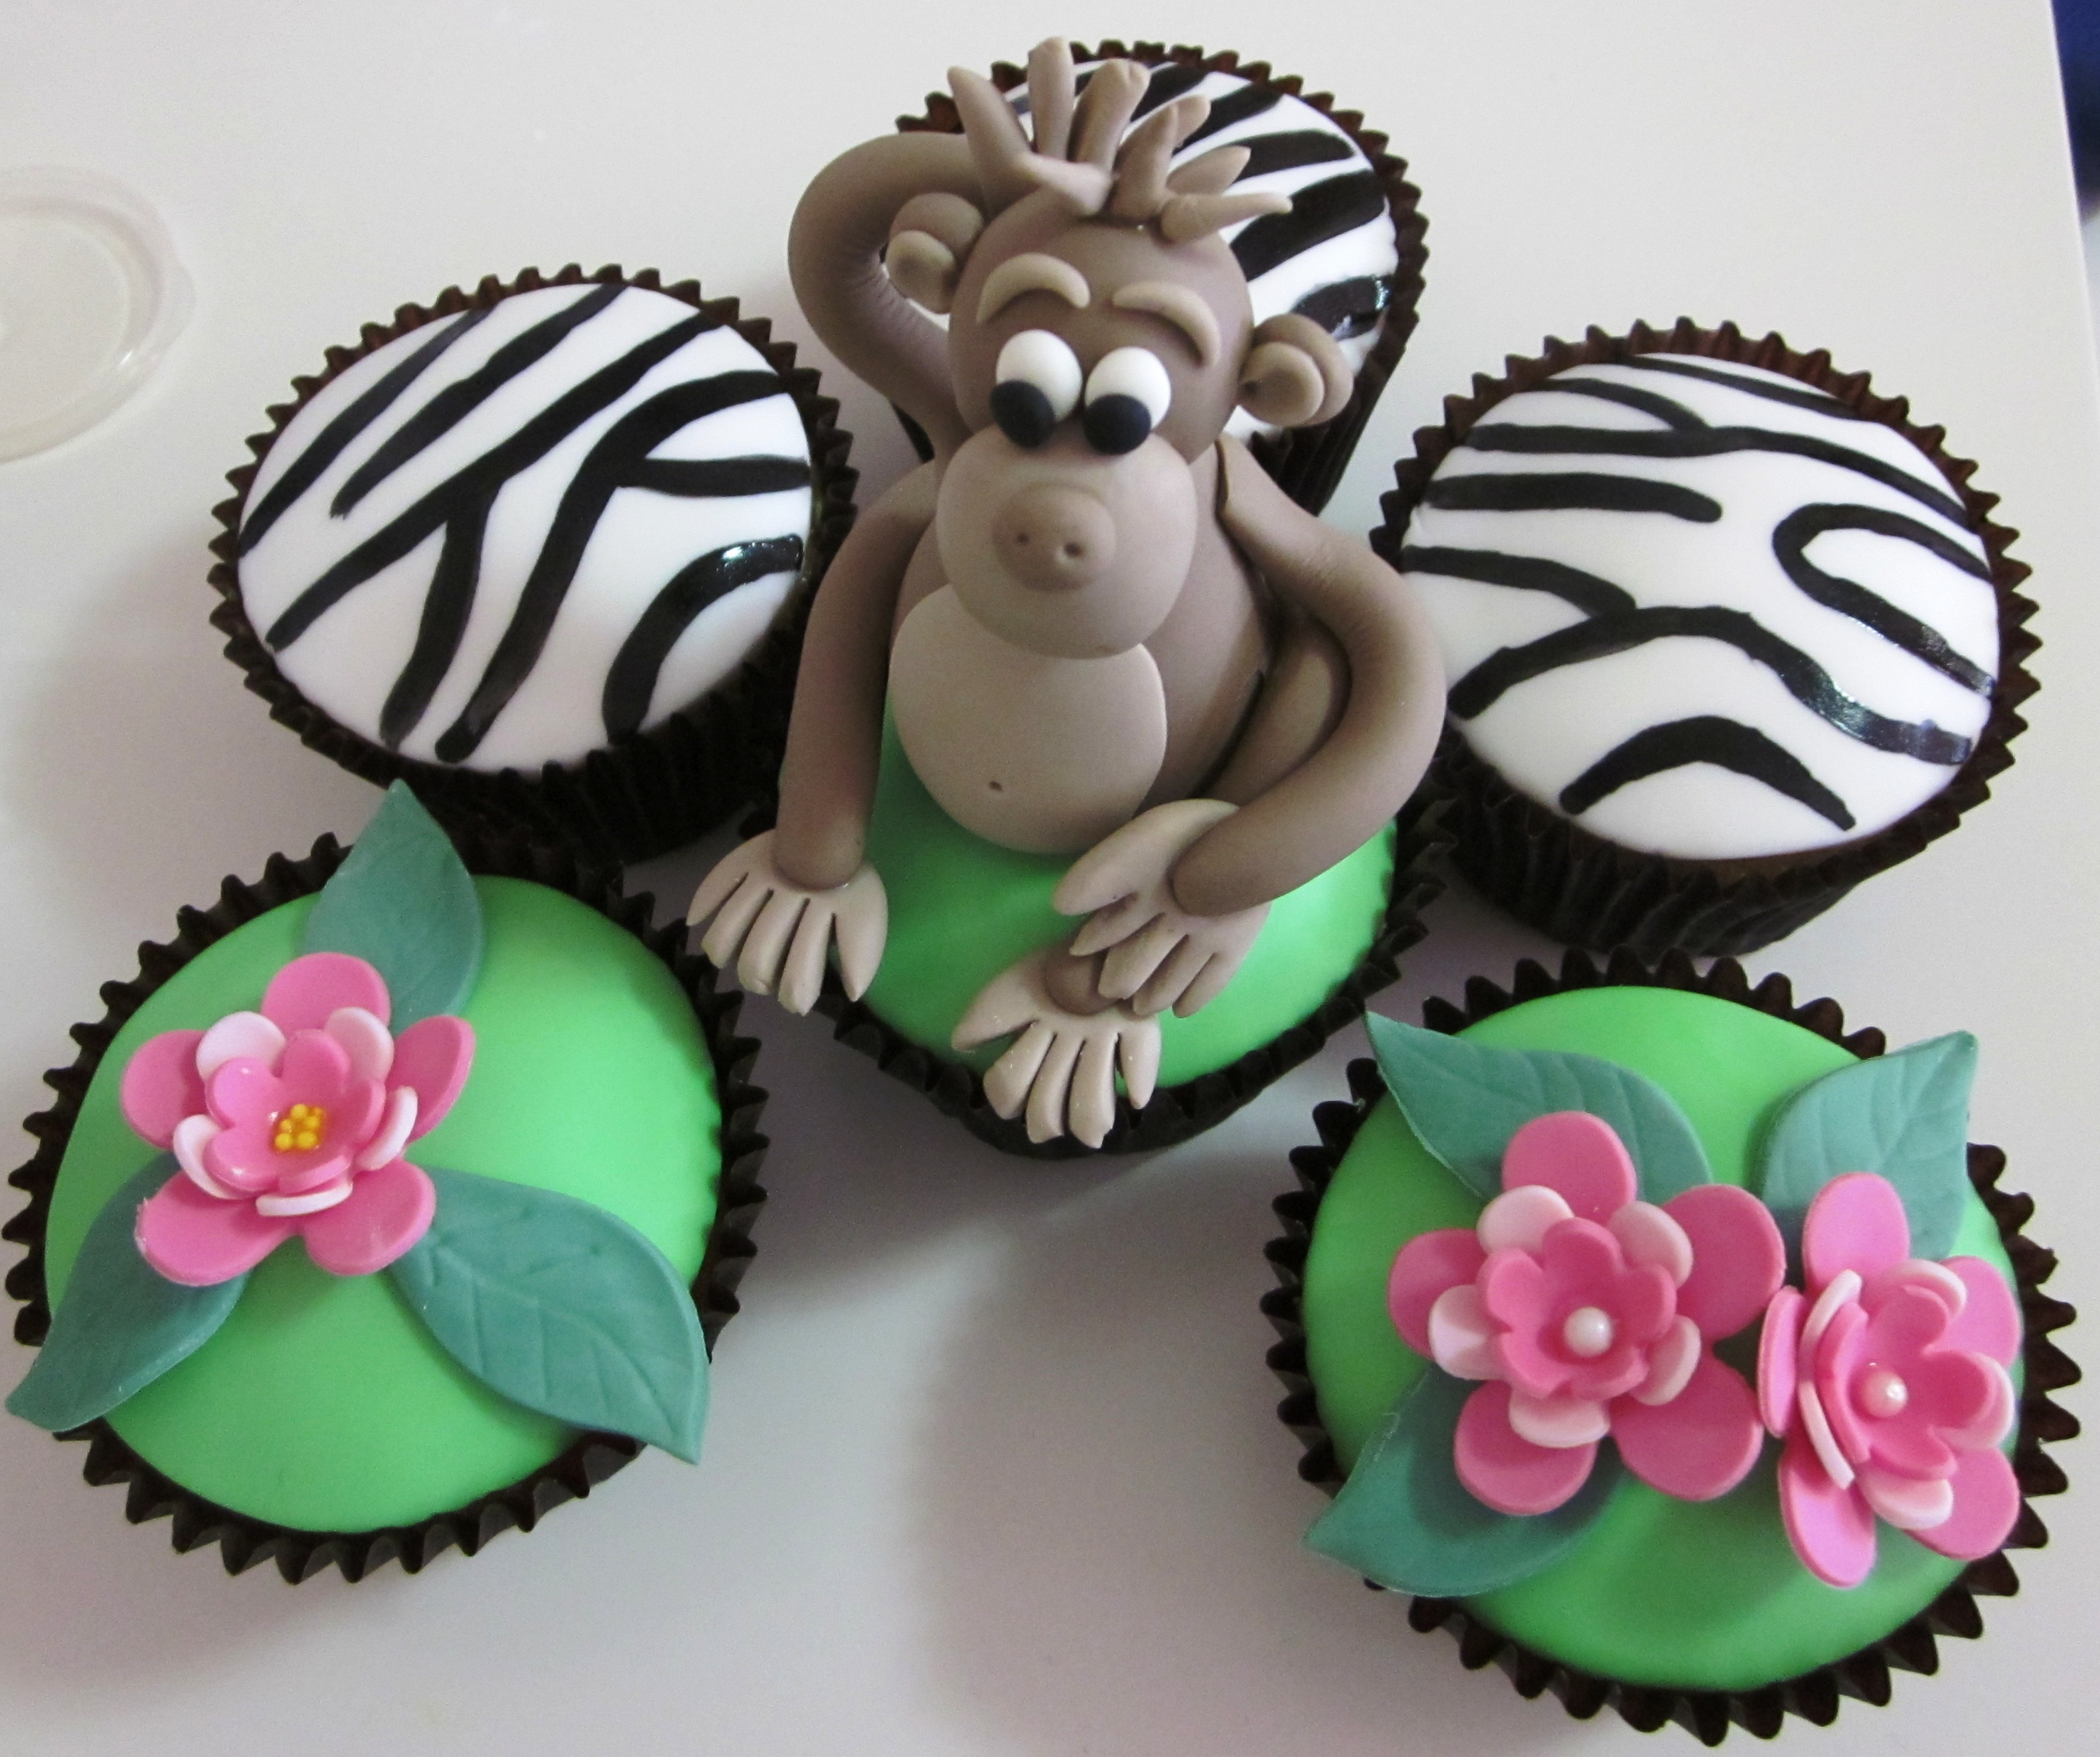 cake decorating class 4 5 and jungle animal cupcakes myfoodmywayblog. Black Bedroom Furniture Sets. Home Design Ideas